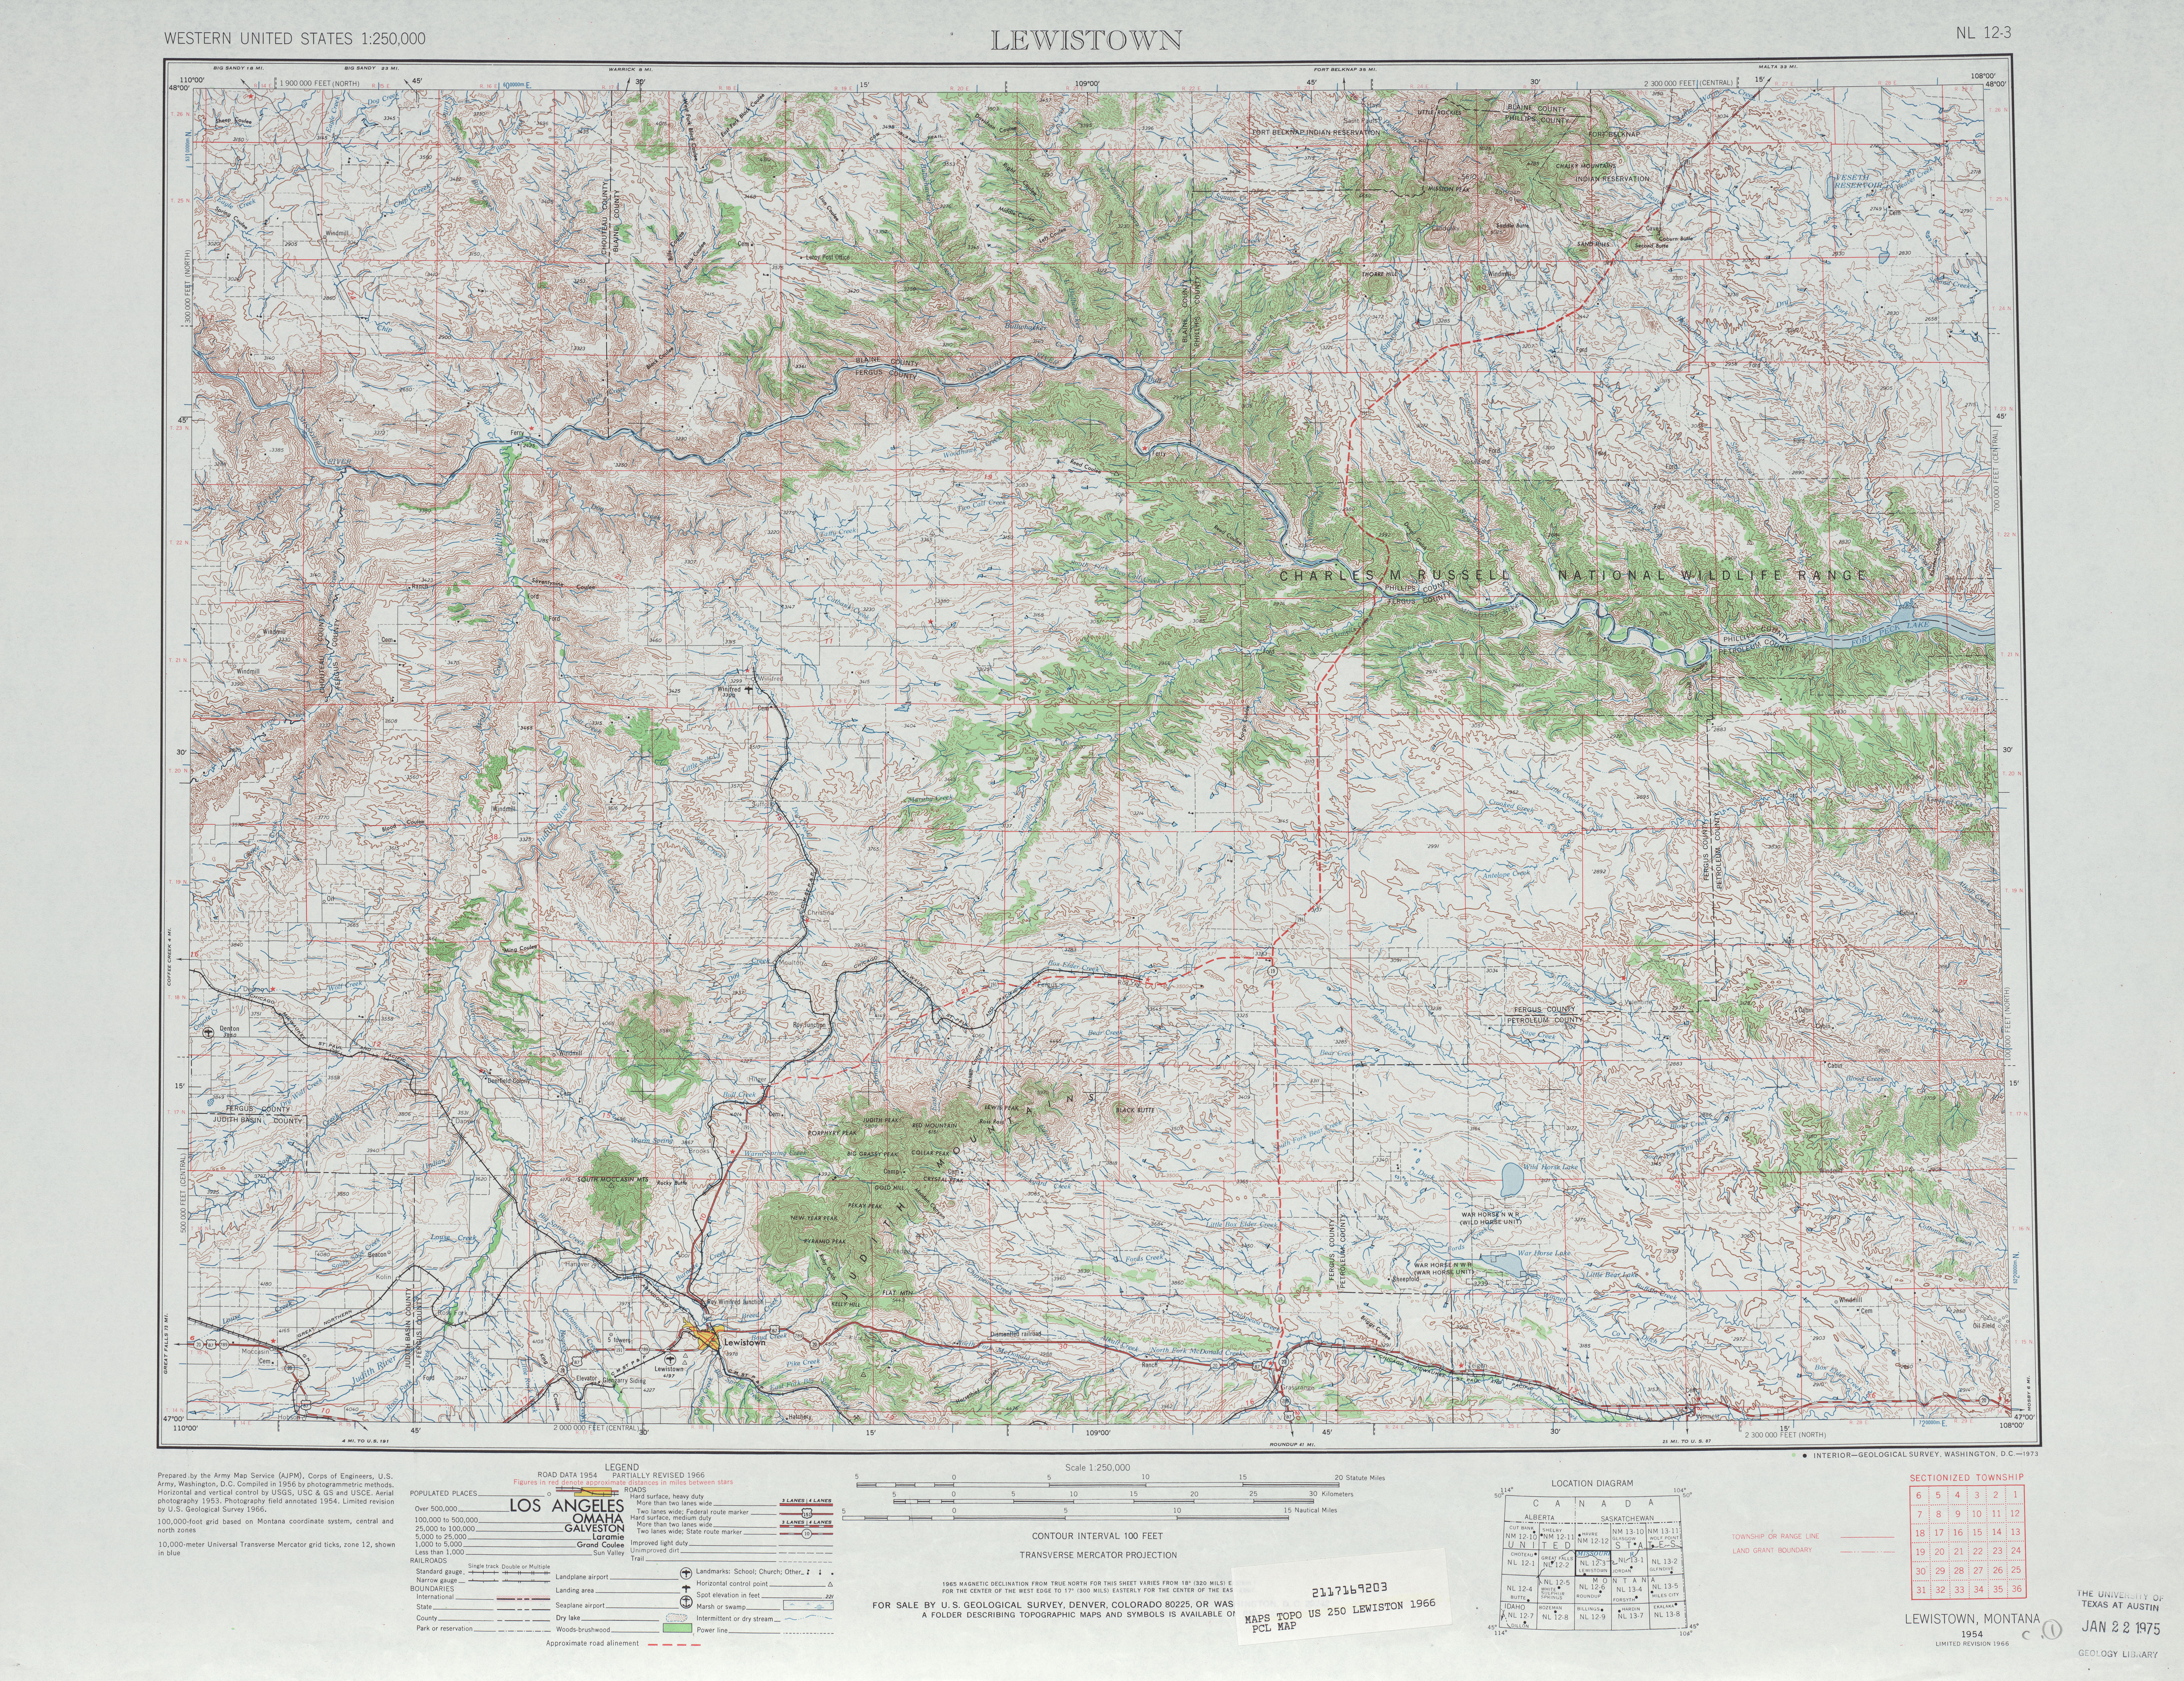 Lewiston Topographic Map Sheet, United States 1966